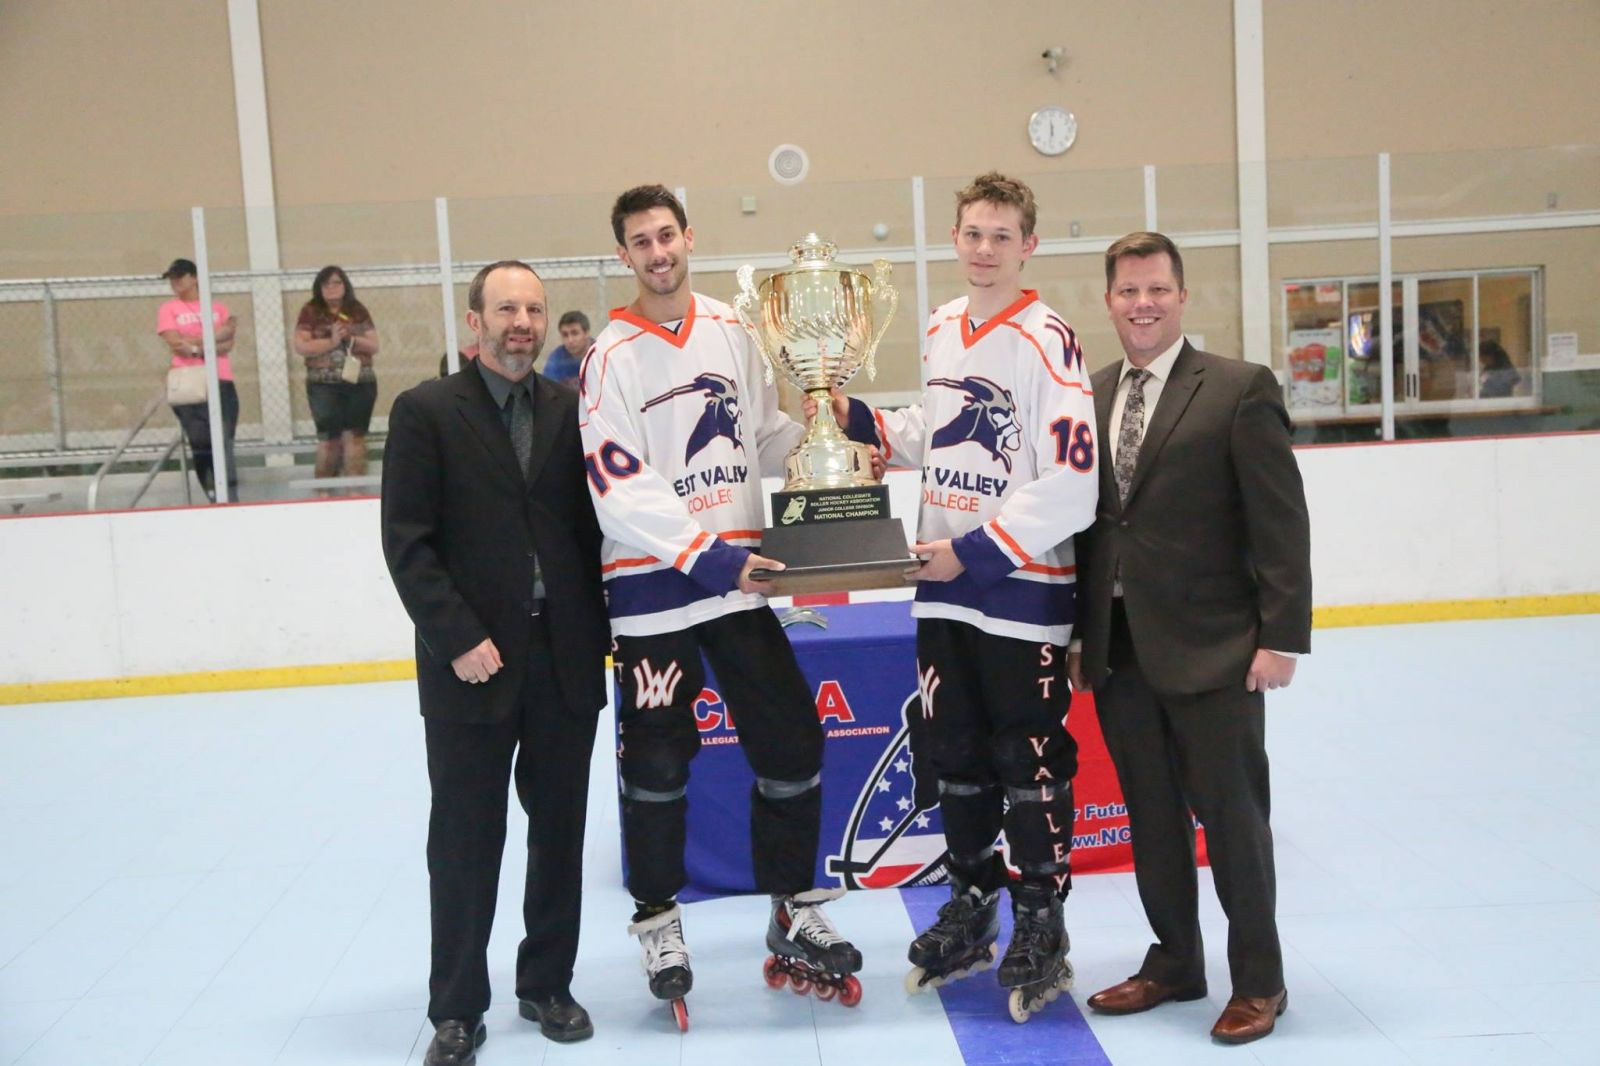 James McGaughy (Left) and Matt Swanson (Right) Accept the National Championship Trophy from NCRHA Executive Director, Brennan Edwards (Left) and NCRHA Director of League Operations, Rob Coggin (Right)